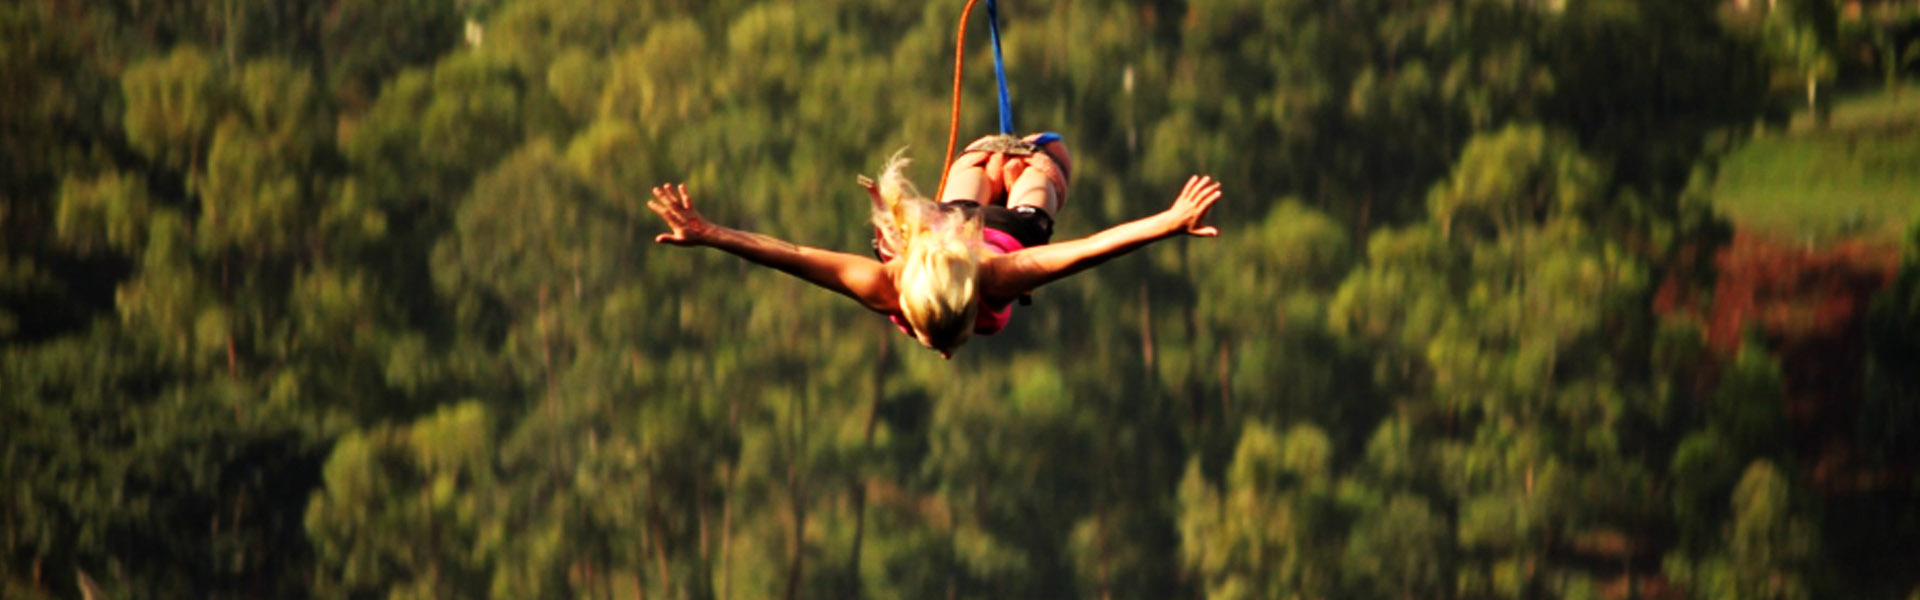 bungee-jumping-experience